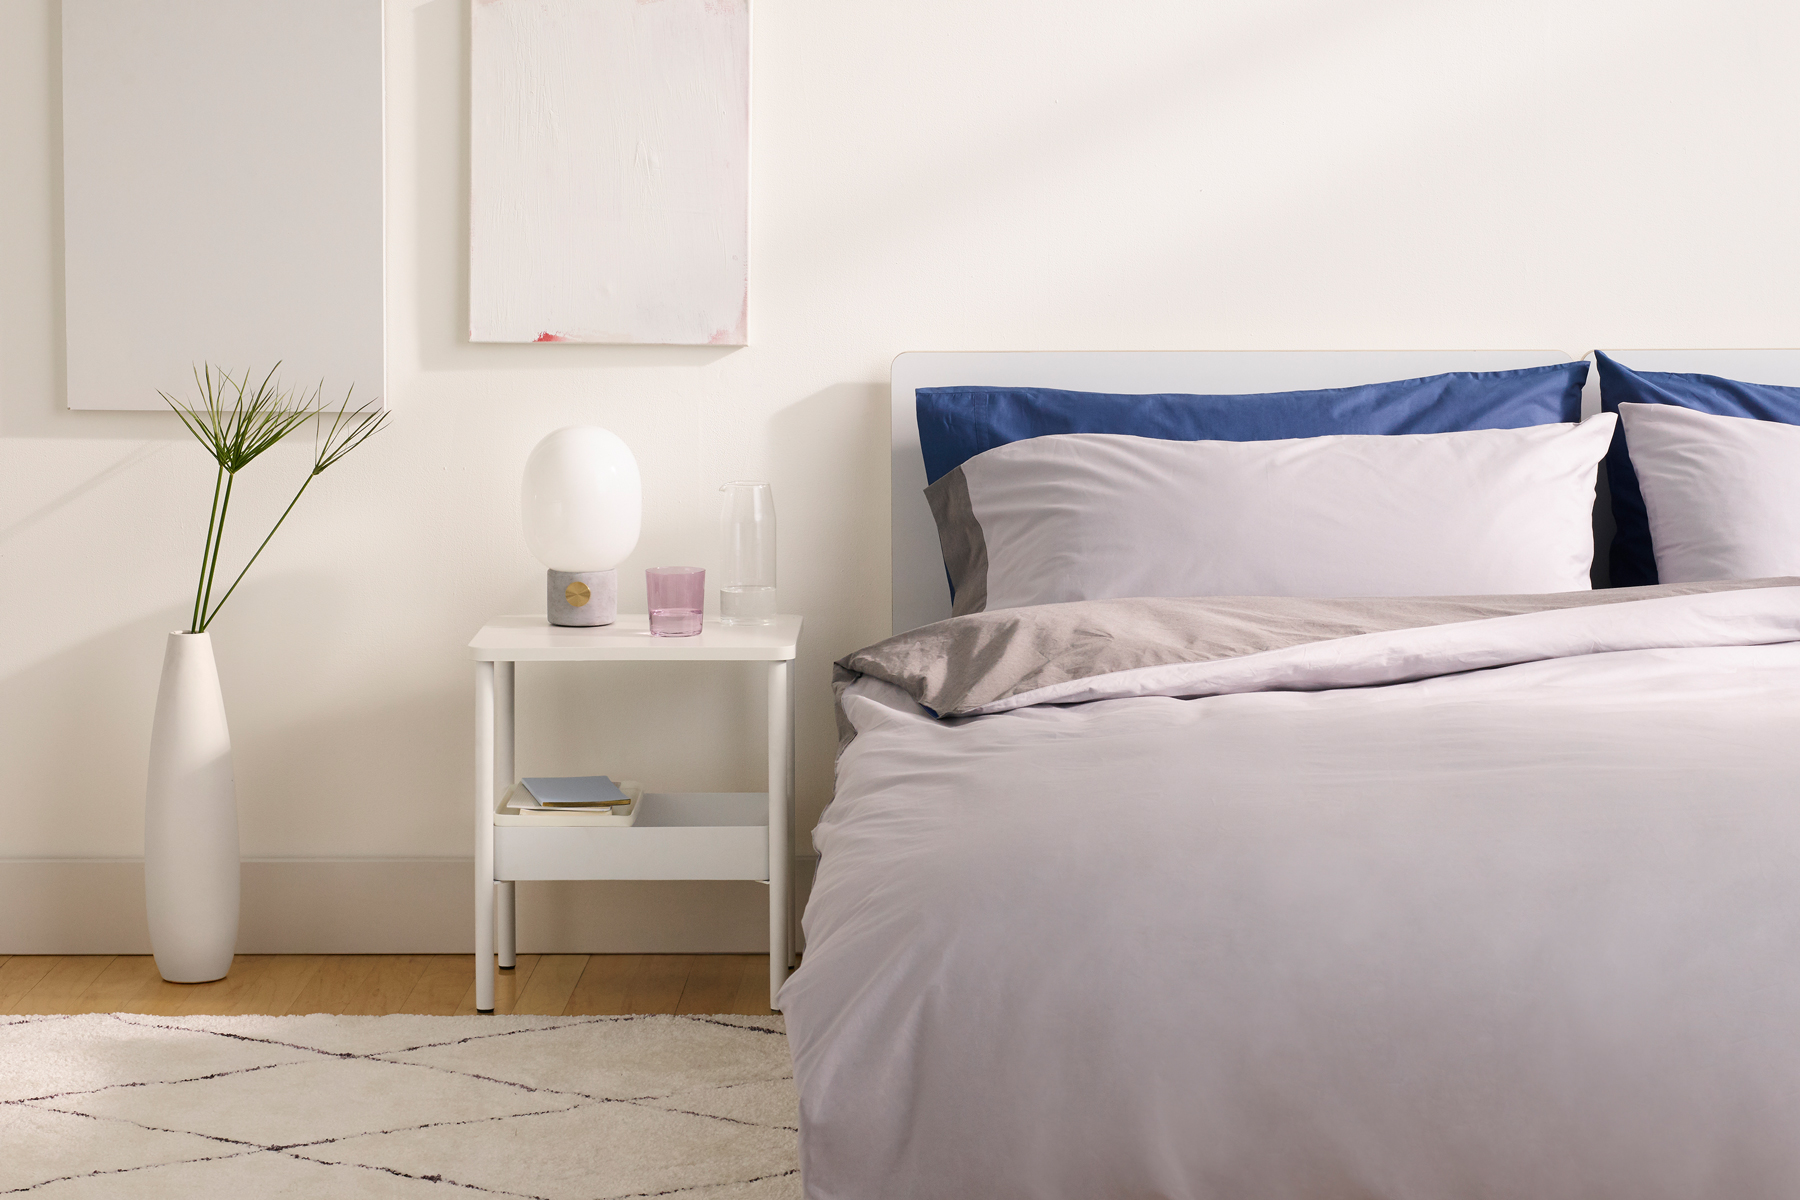 Casper Humidity Fighting Duvet cover review - bed with duvet cover